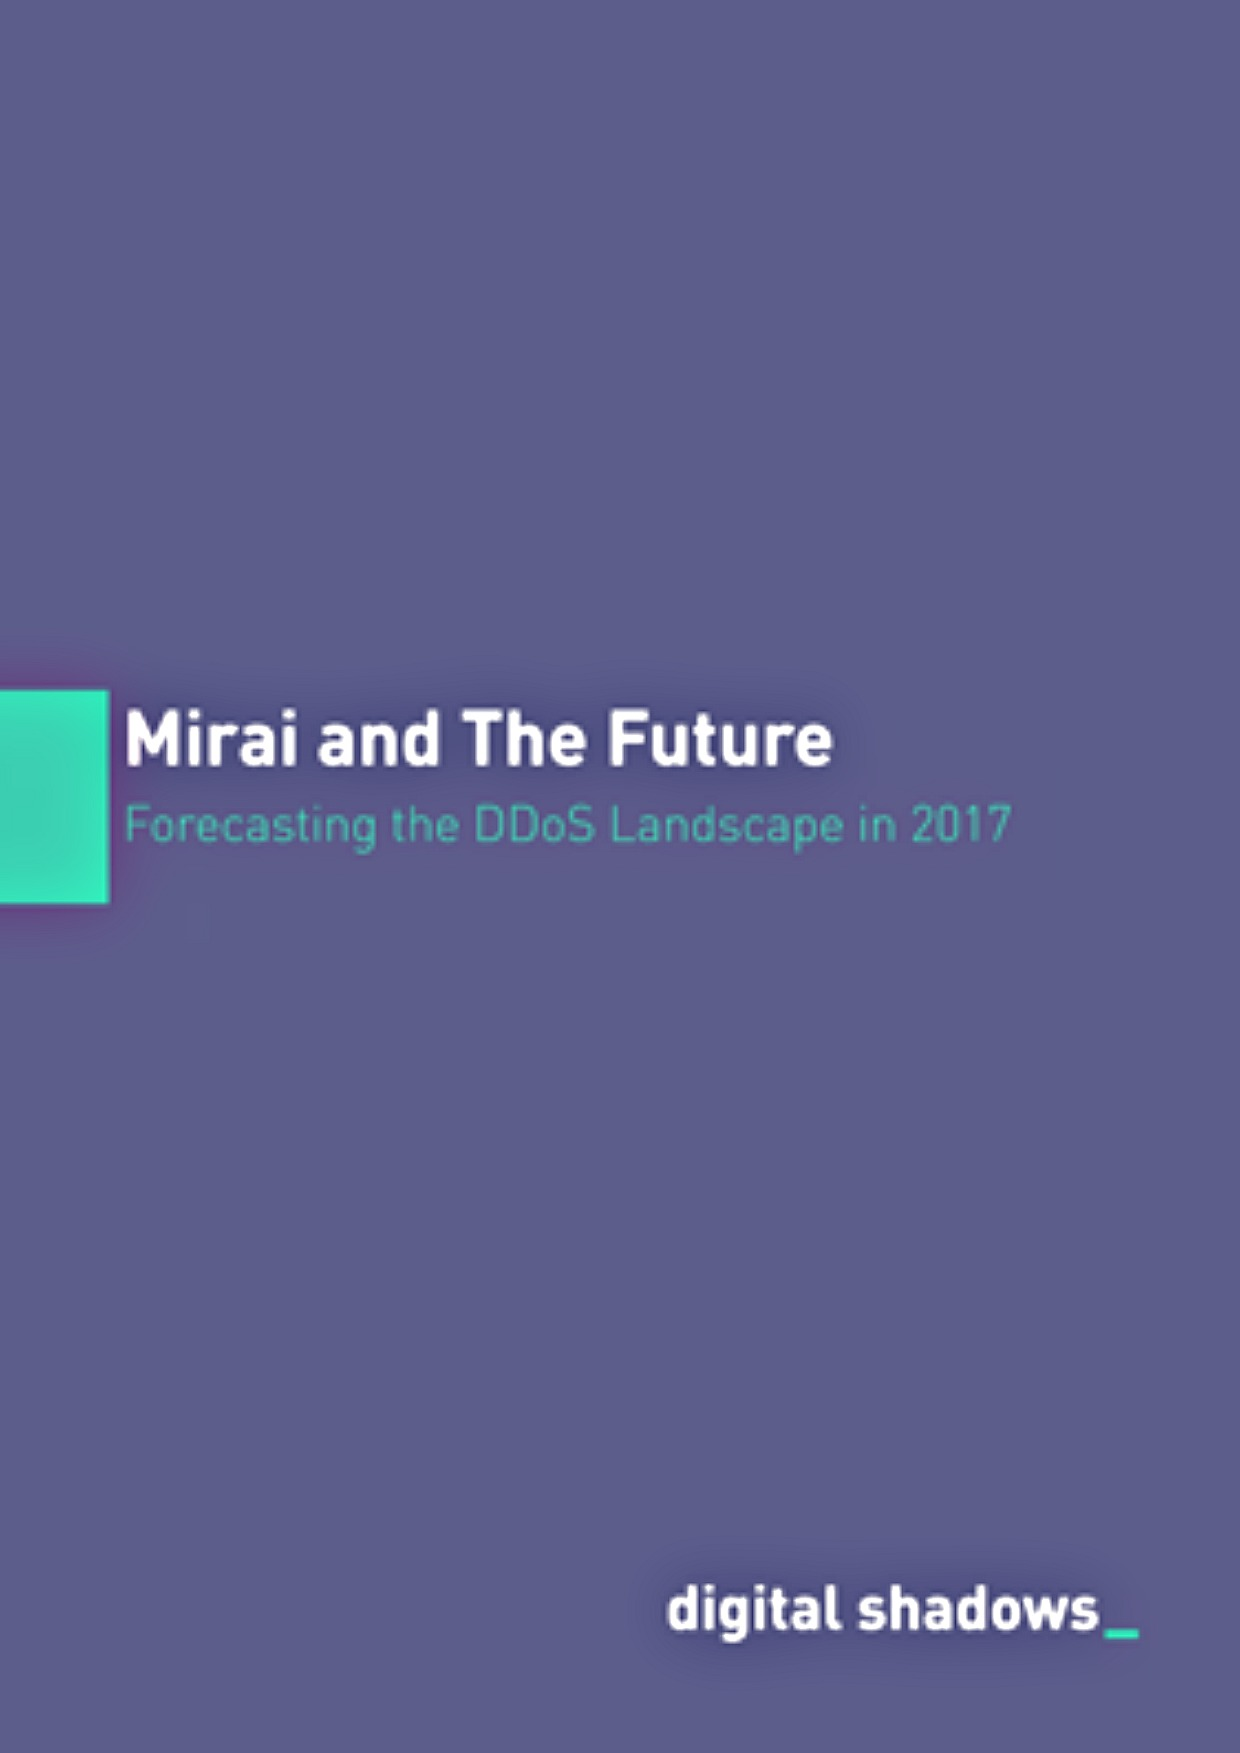 Mirai and the Future cover page